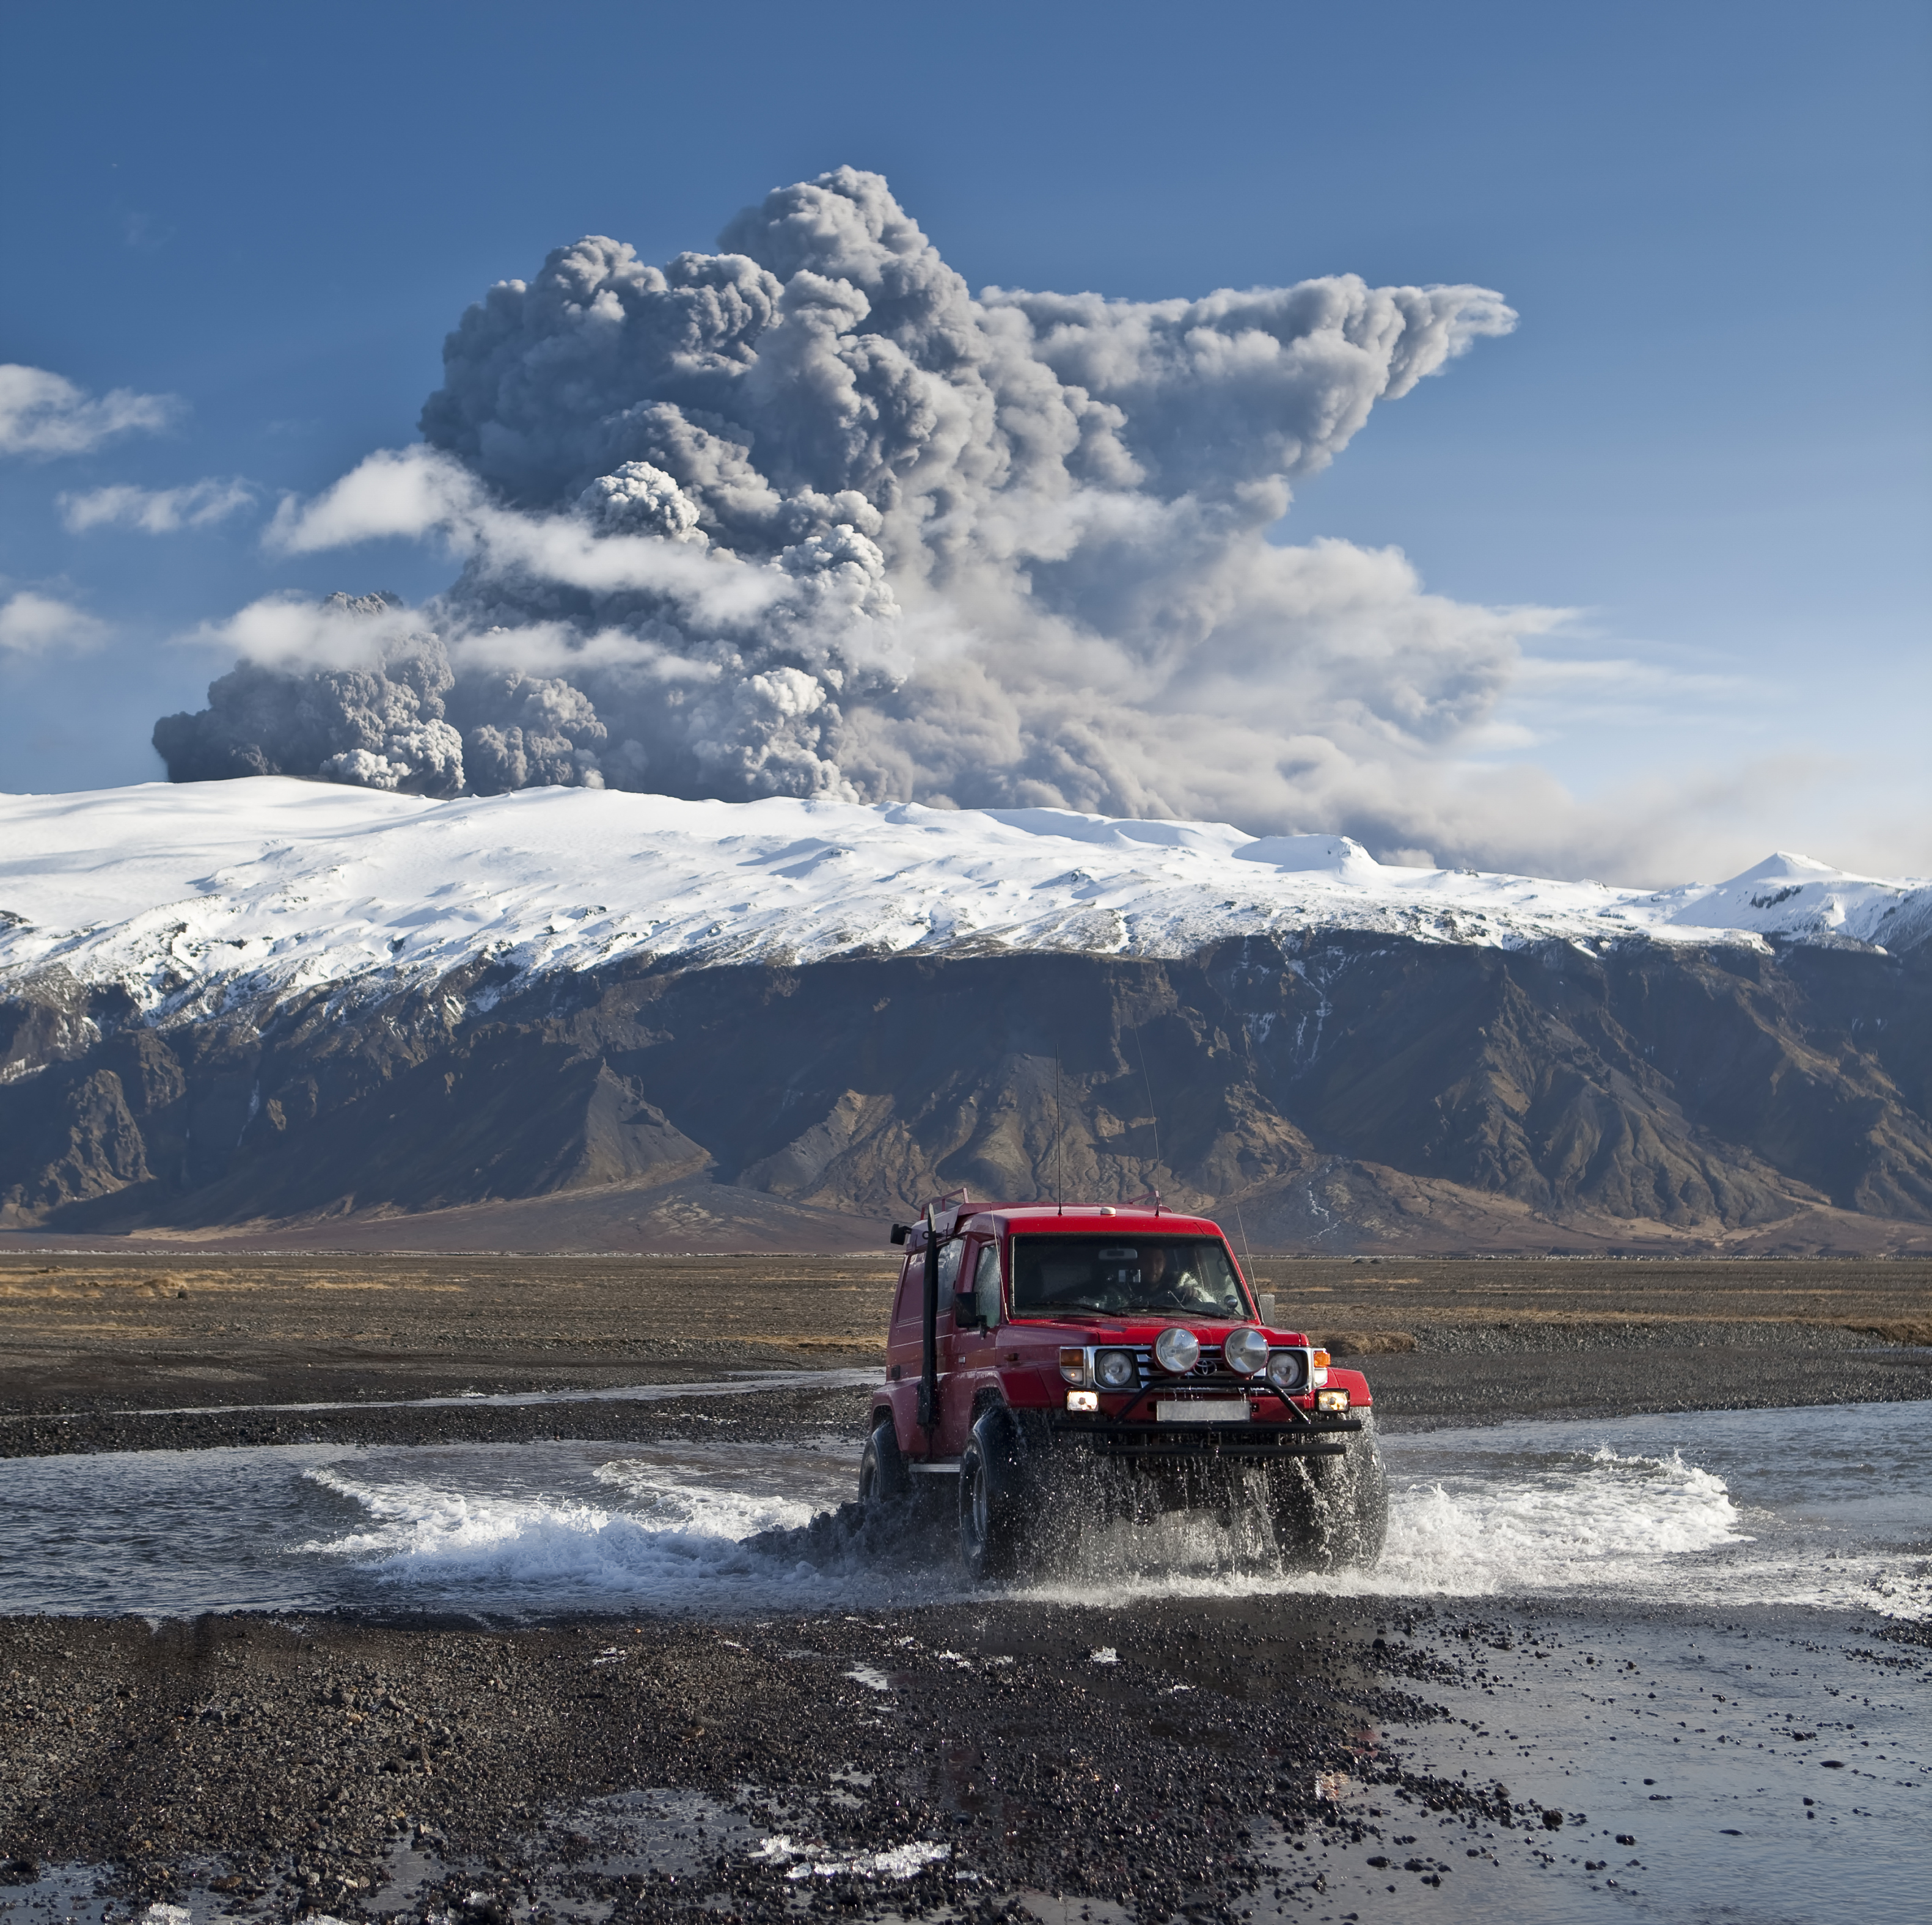 Get used to this: The Eyjafjallajökull eruption in 2010